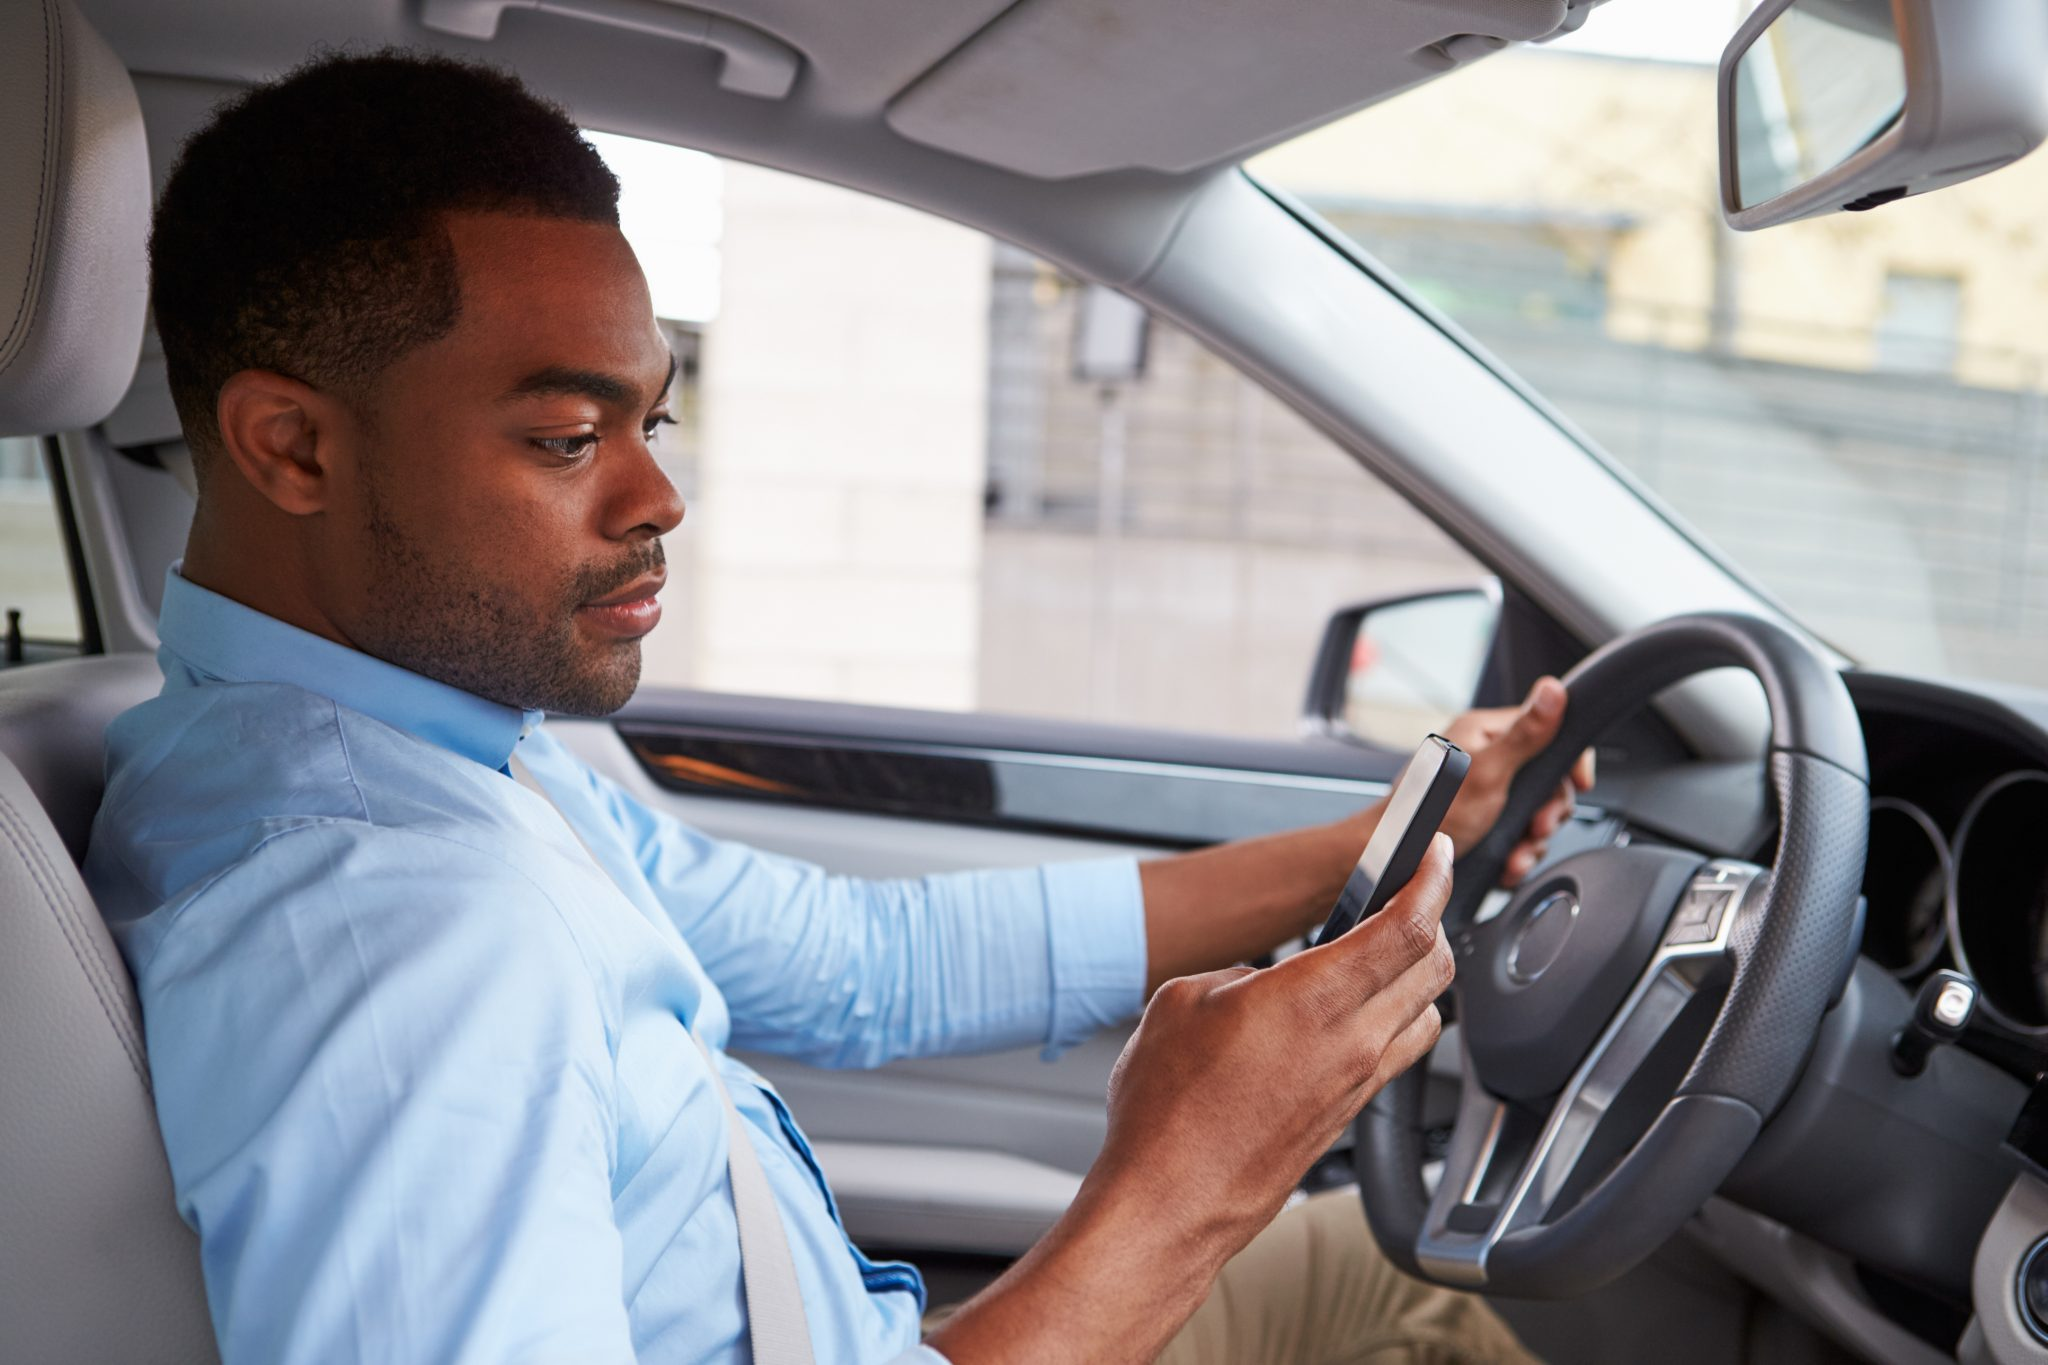 Texas governor signs statewide ban on texting while driving